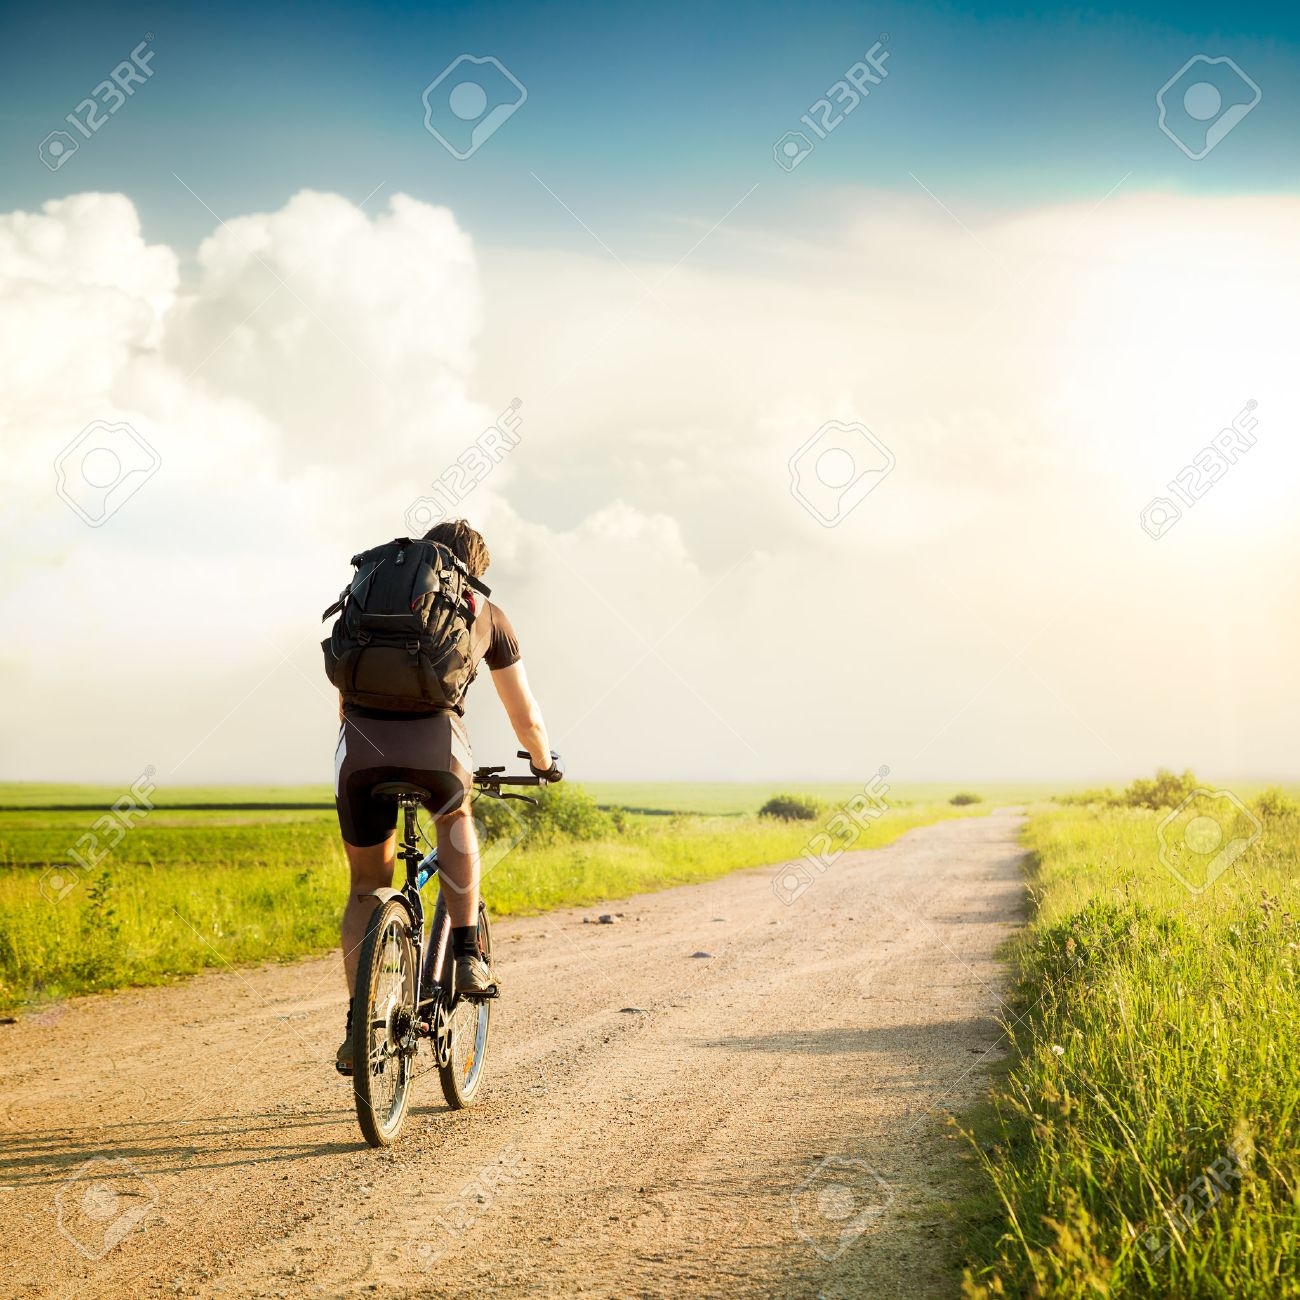 Rear View of a Man with Backpack Riding a Bicycle on Beautiful Nature Background. Healthy Lifestyle and Travel Concept. Styled Toned Photo. Copyspace. - 33651787